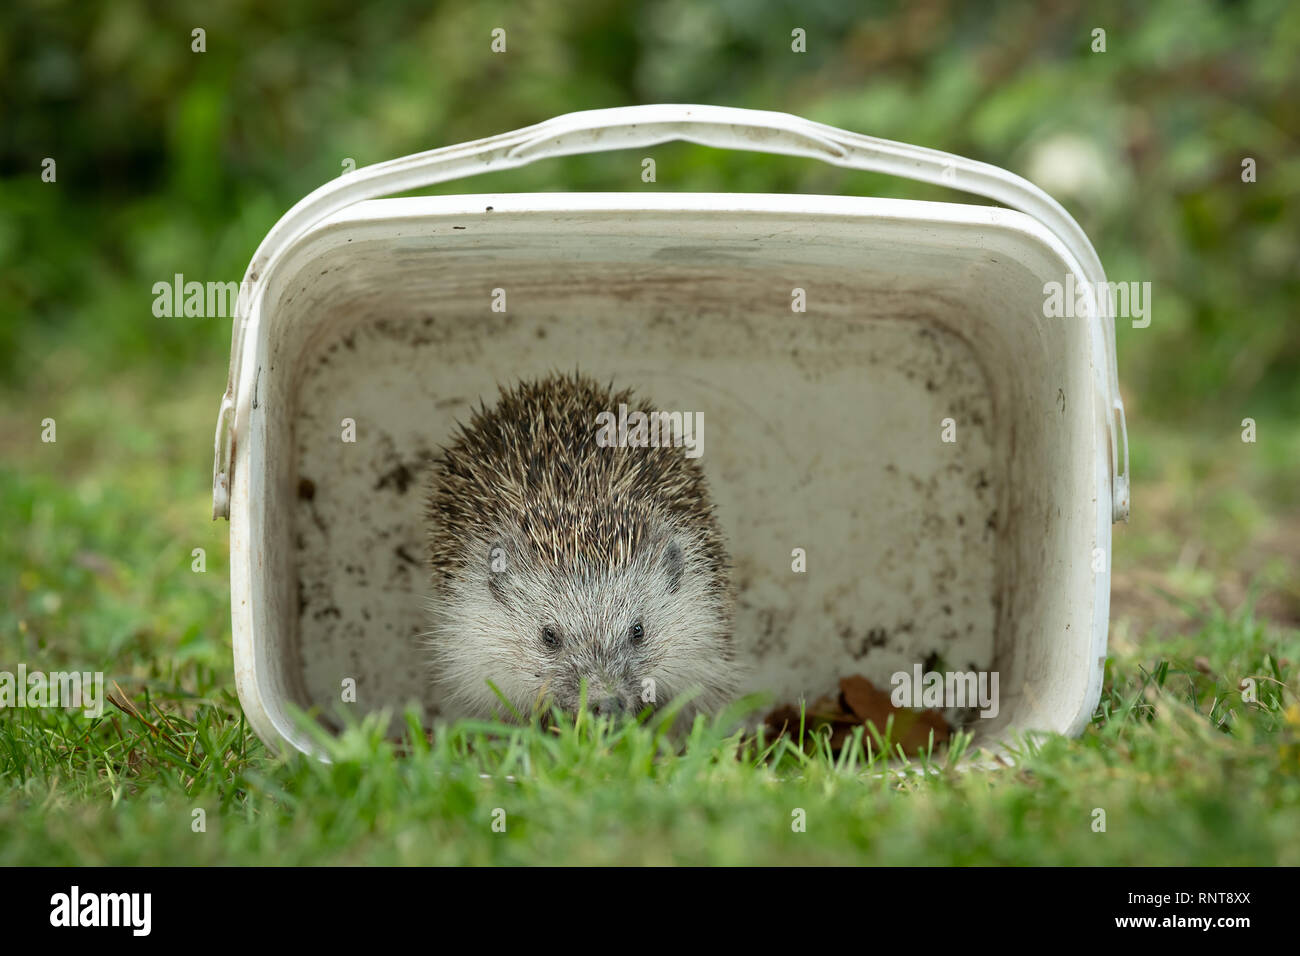 Portrait of a hedgehog hiding in a white box in a green meadow in autumn Stock Photo